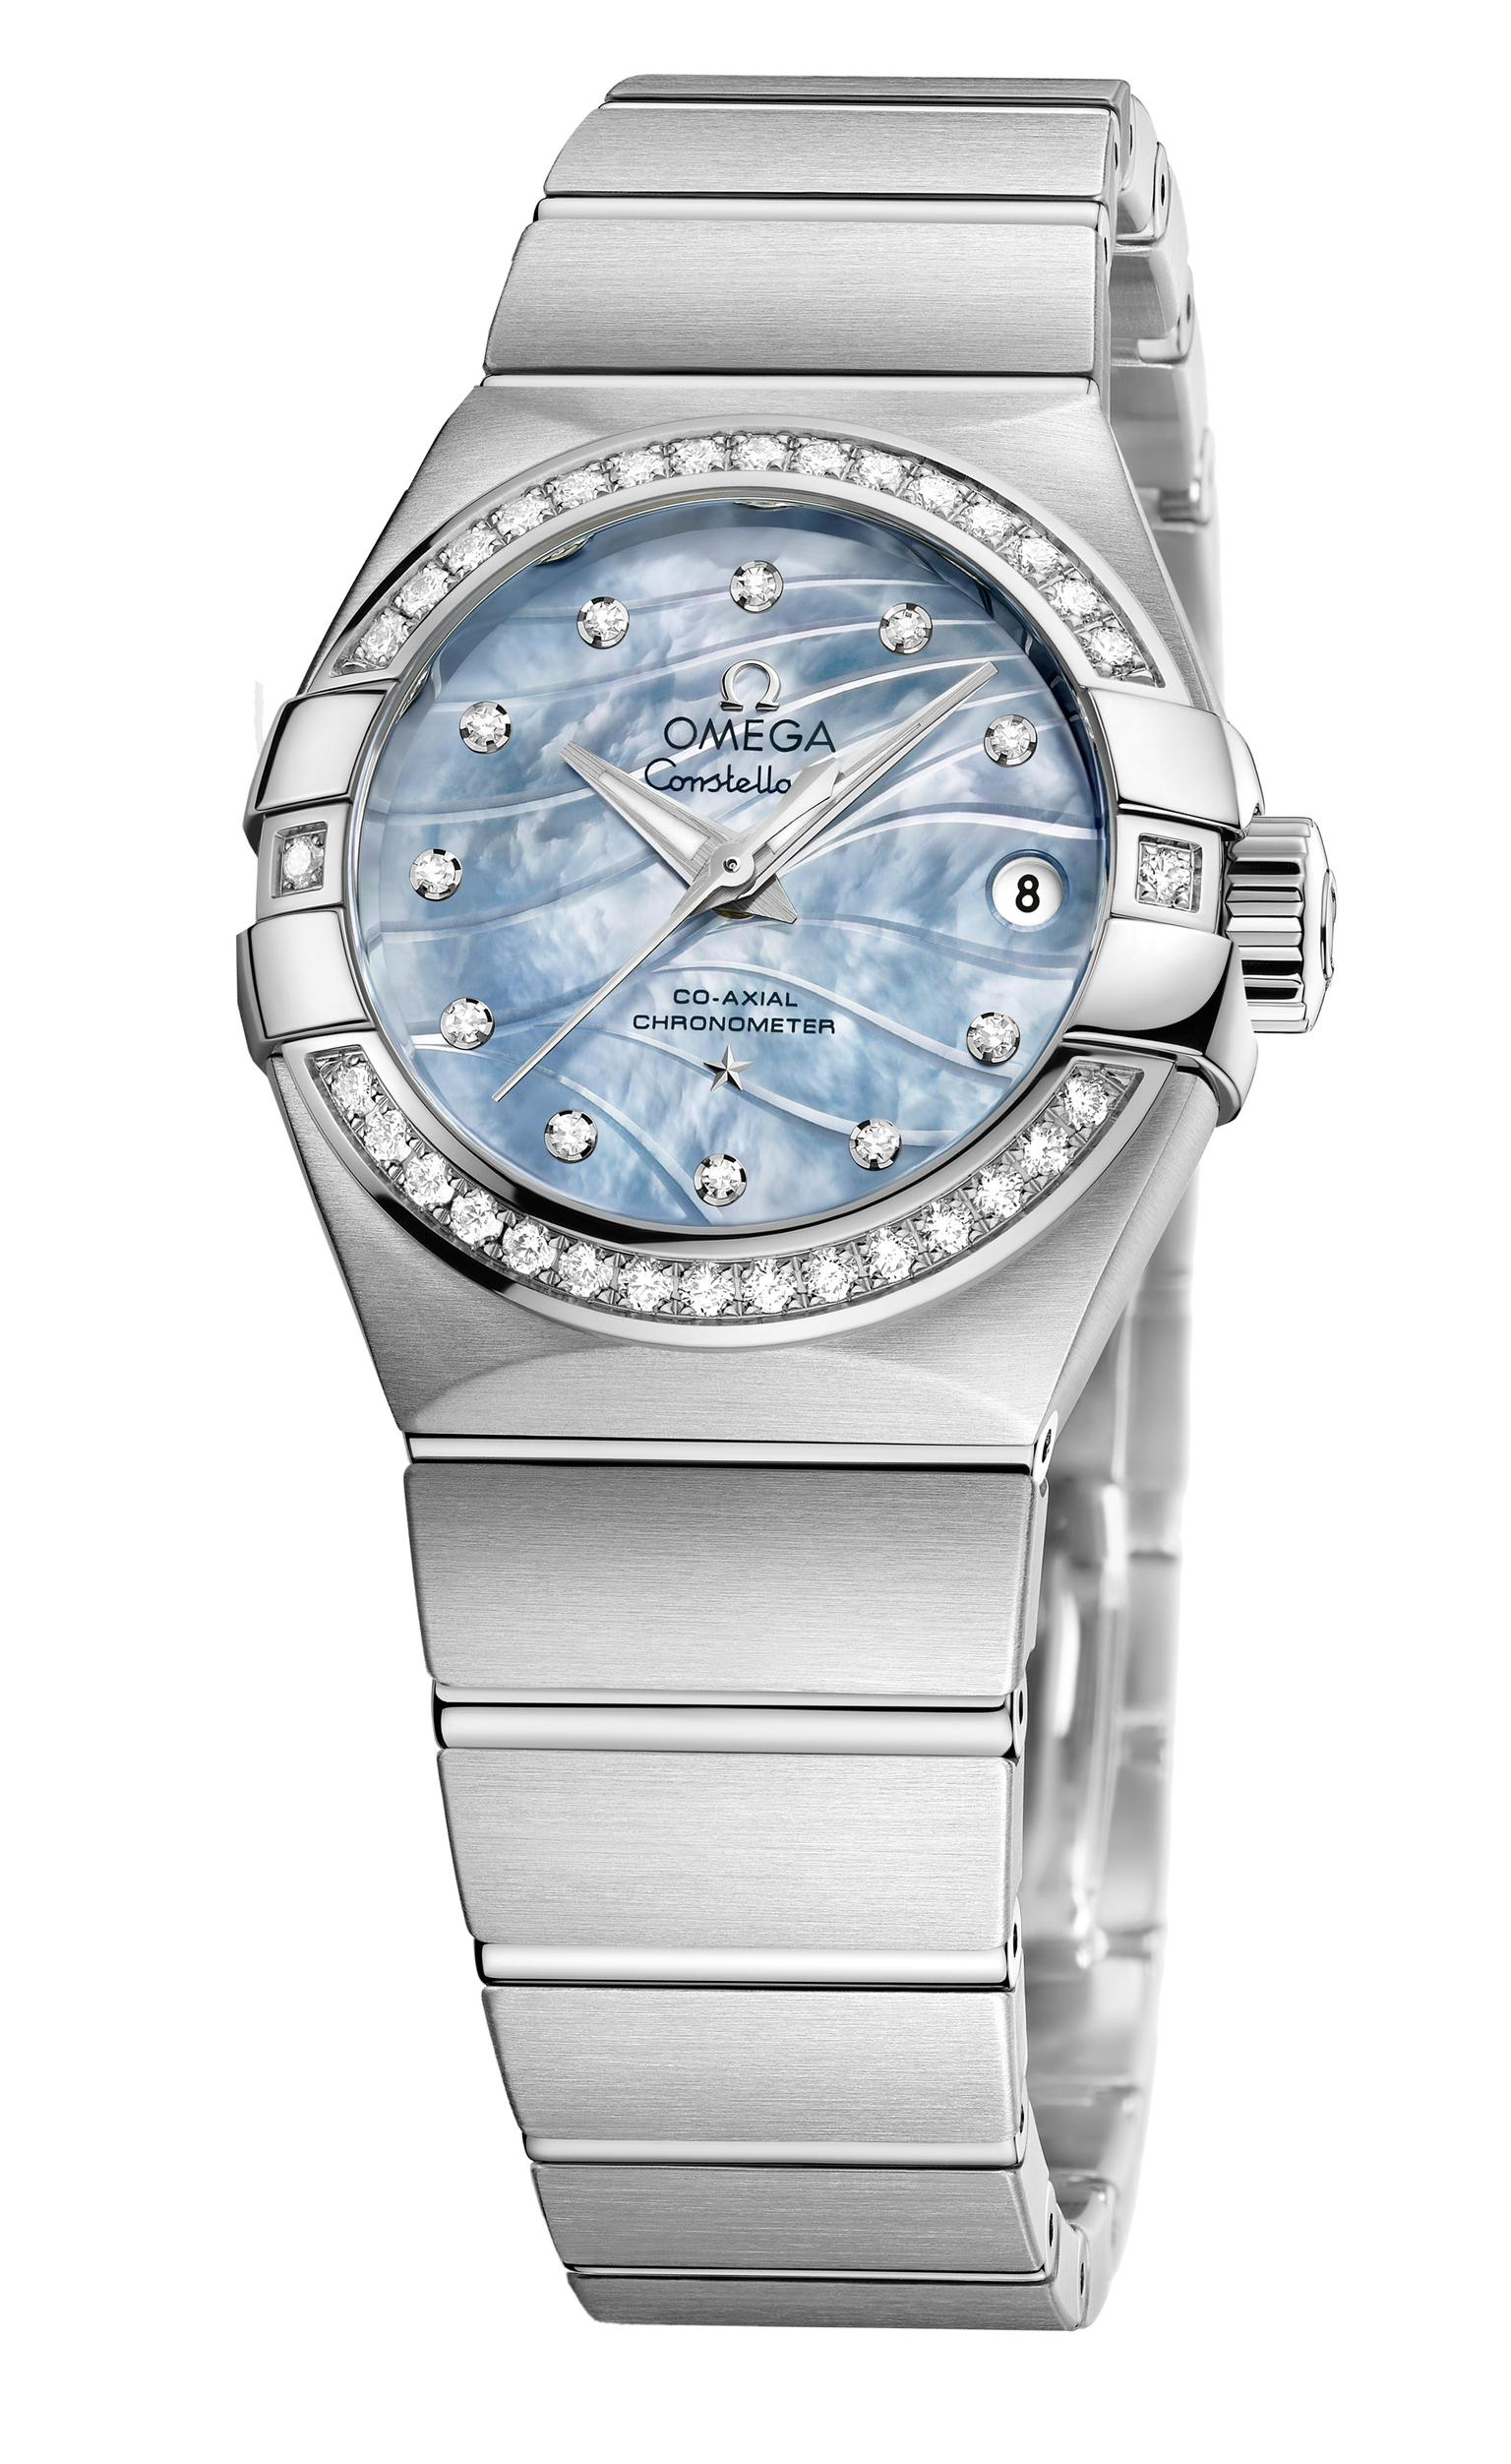 Omega-Constellation-Pluma-watch-Zoom